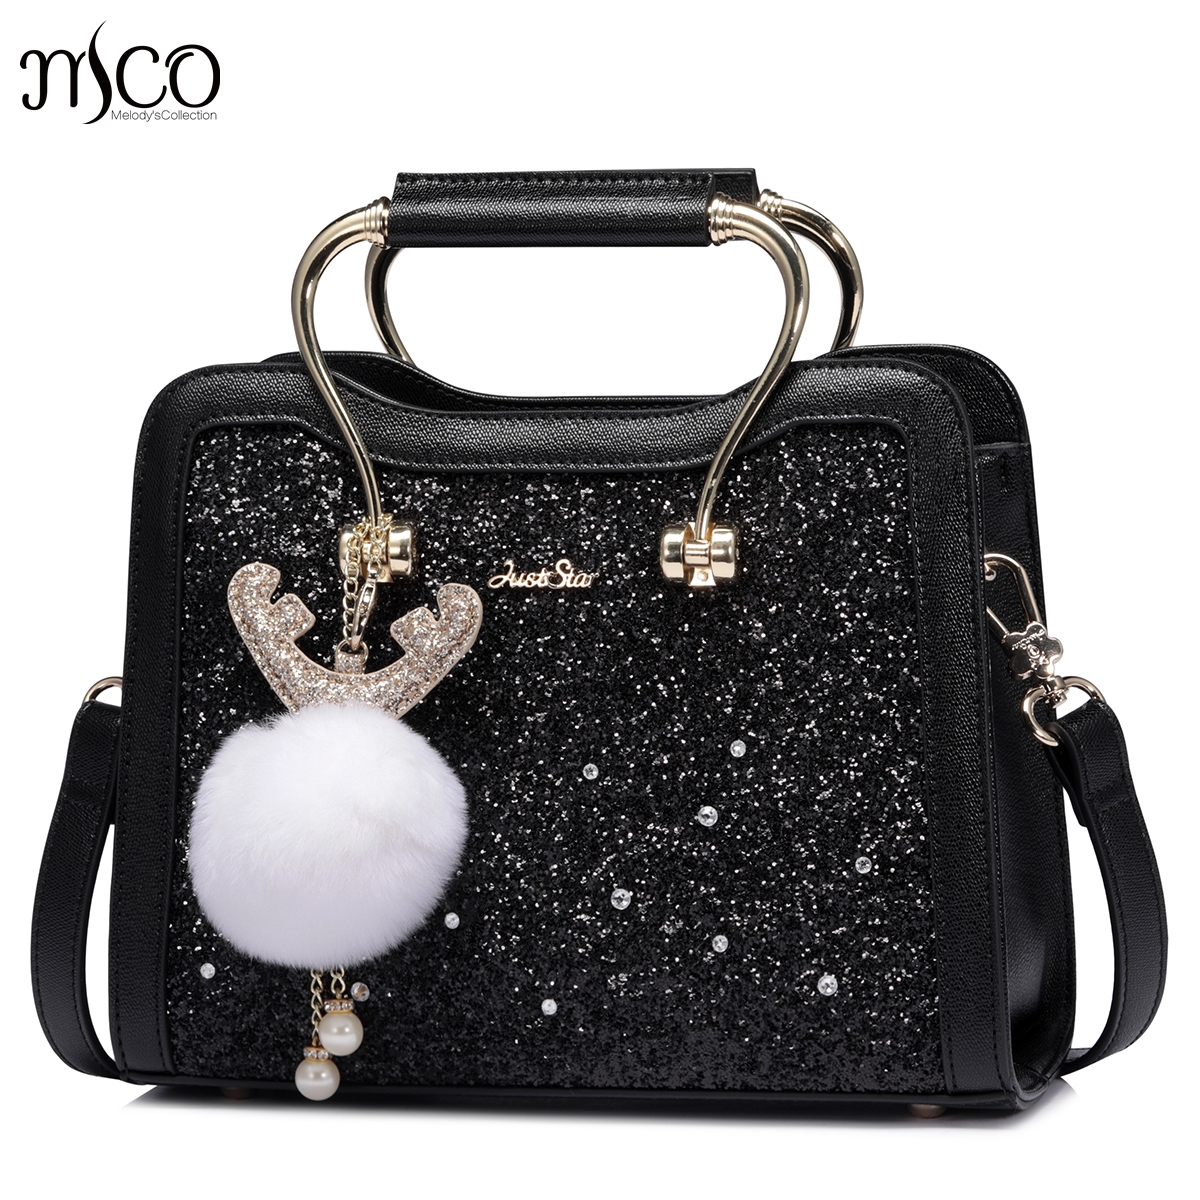 Womens Fashion Cute Girls Sequins Handbags Paillette Leisure Leather Ladies Messenger Bags Sac a main femme de marque luxe guir  womens fashion cute girls sequins backpack paillette leisure school bookbags leather backpack ladies school bags for teenagers